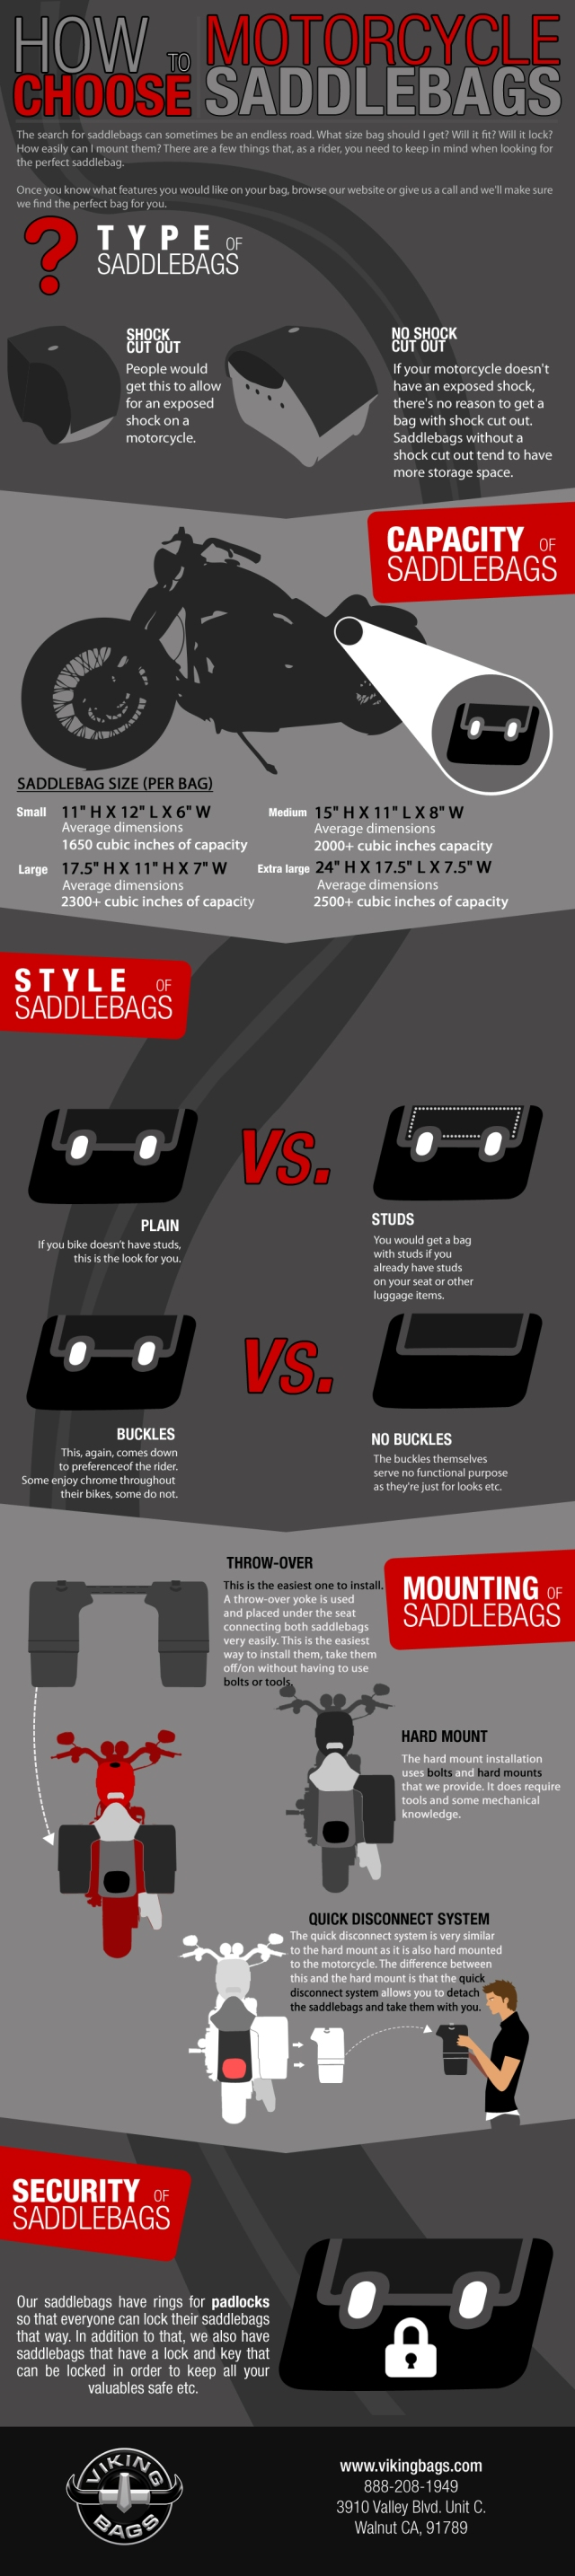 How To Choose Motorcycle Saddlebags